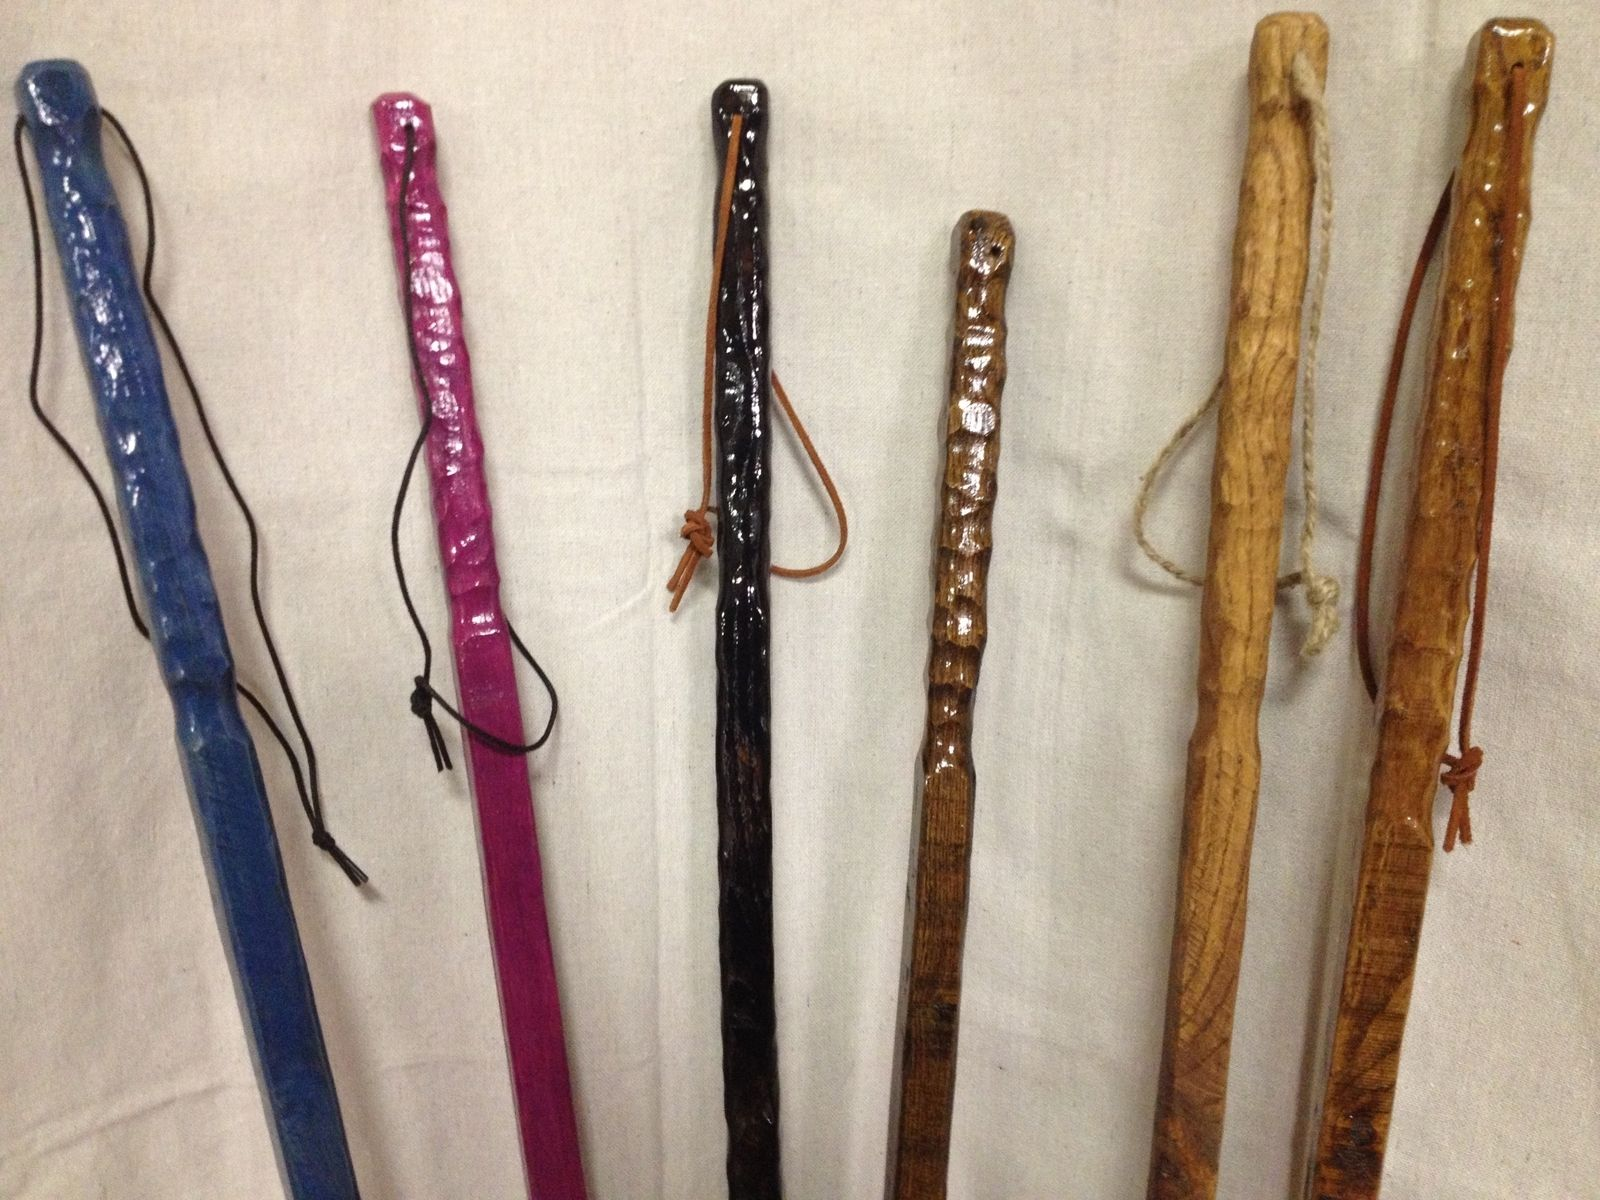 Wooden Walking Sticks ~ Handmade square wooden rustic walking sticks by the